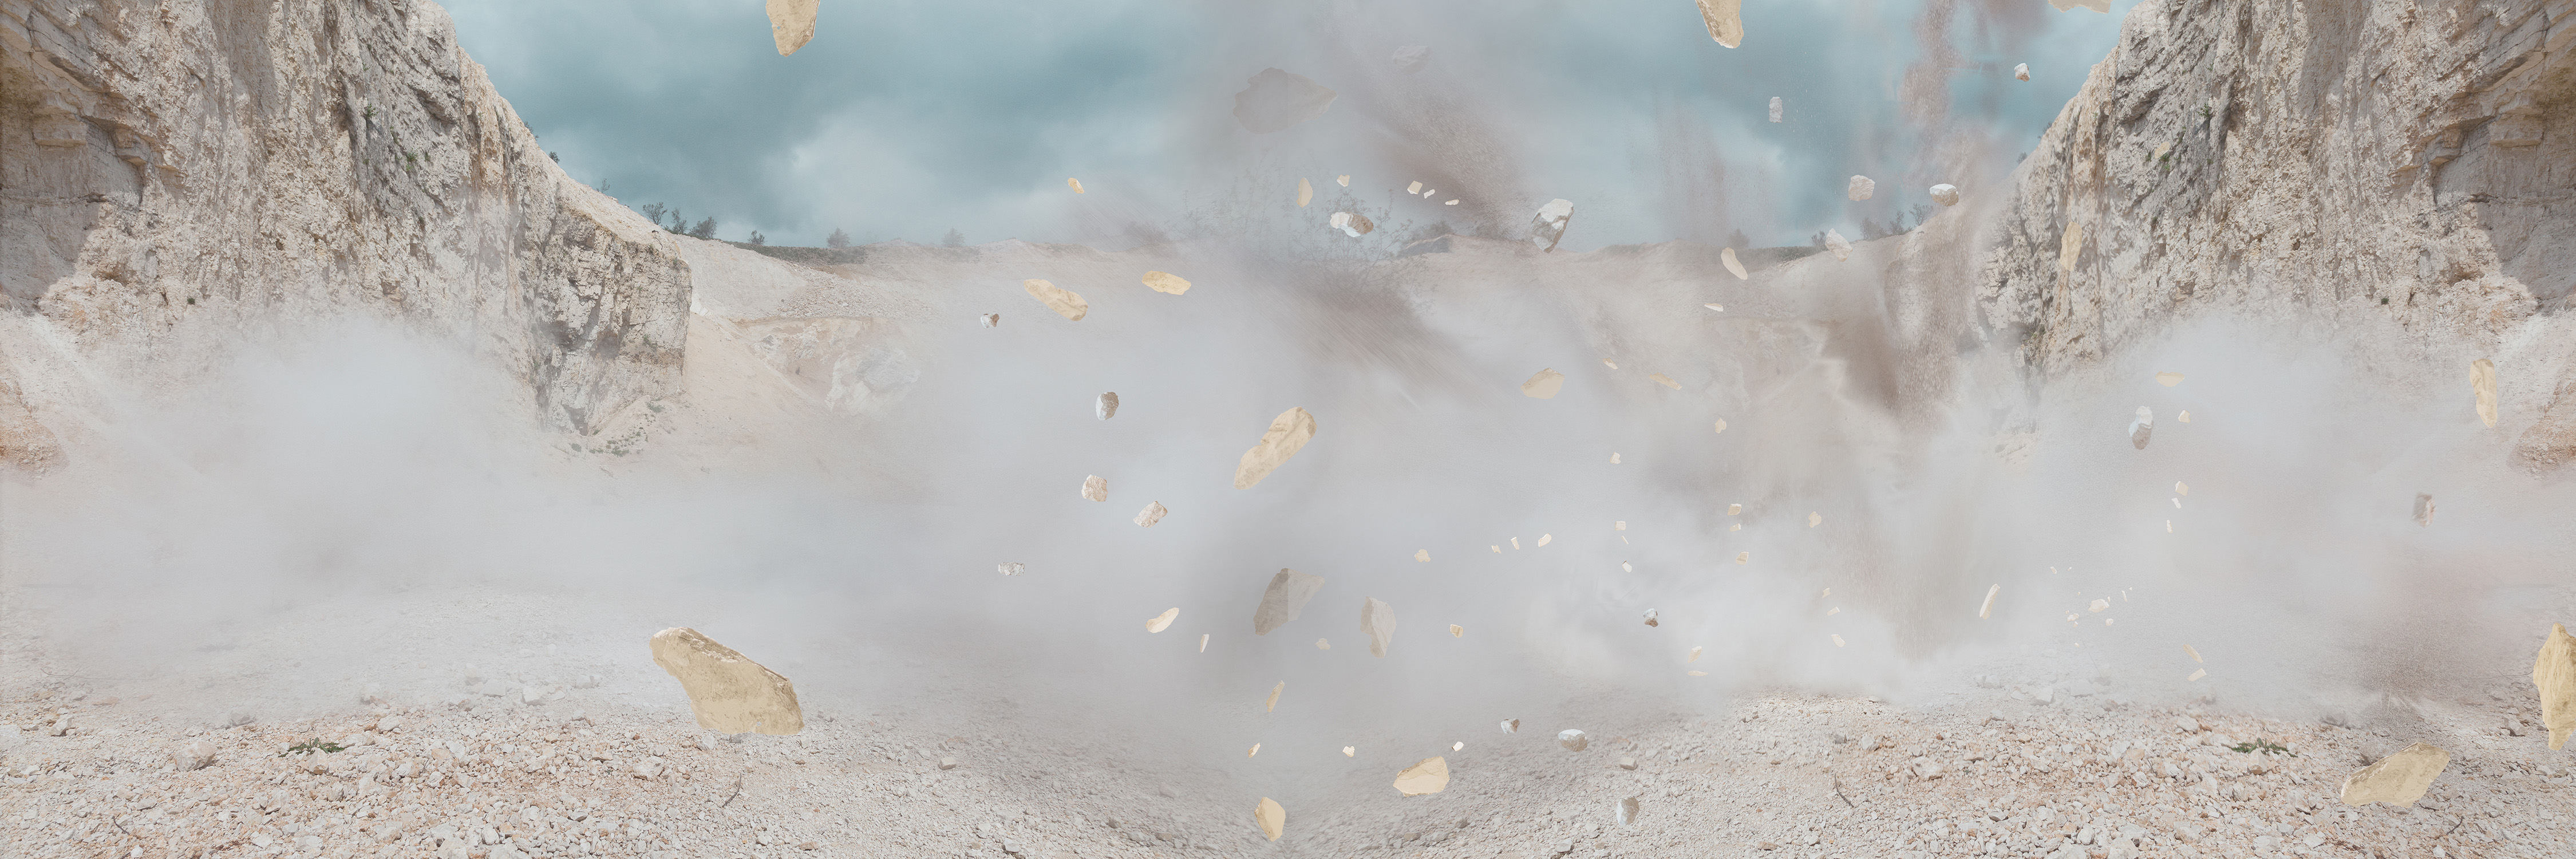 Dust-30cm x 90cm – Print on Canson ©Infinity Rag Photographique 310gr/mq-©2014 – Edition of 5